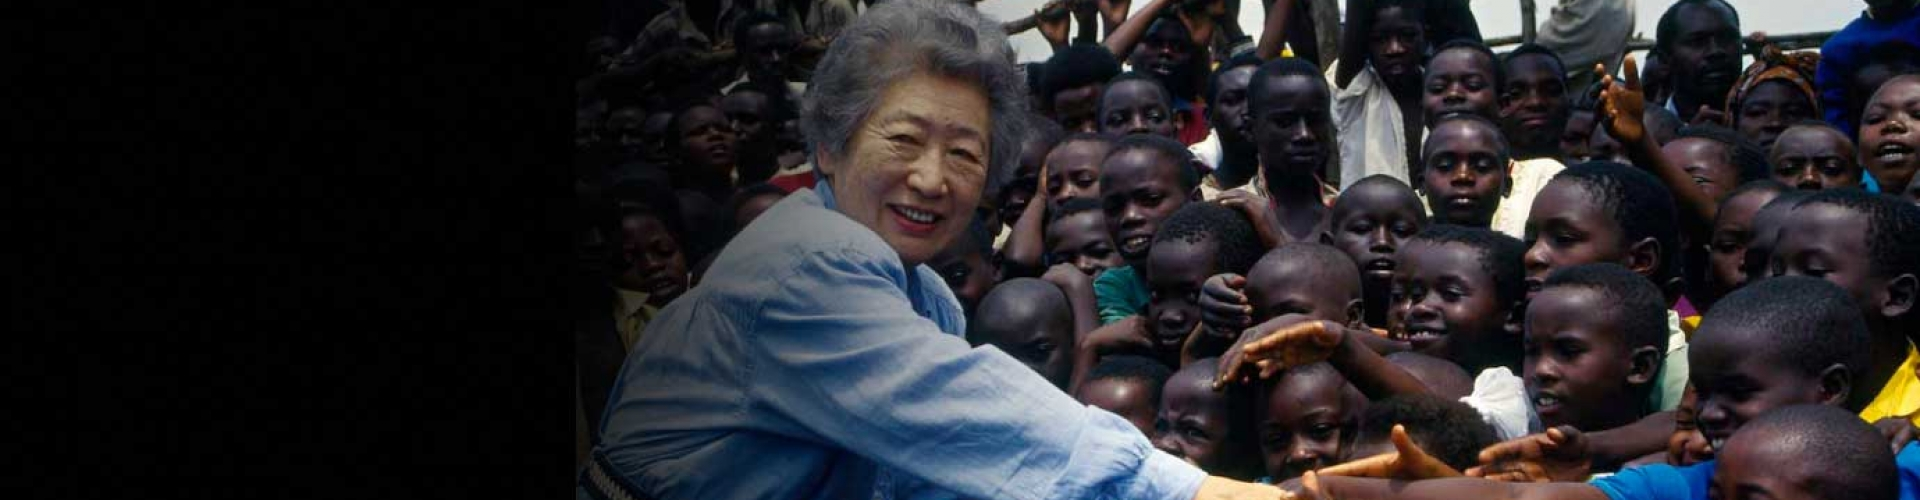 UNHCR statement on the death of former UN High Commissioner for Refugees Sadako Ogata